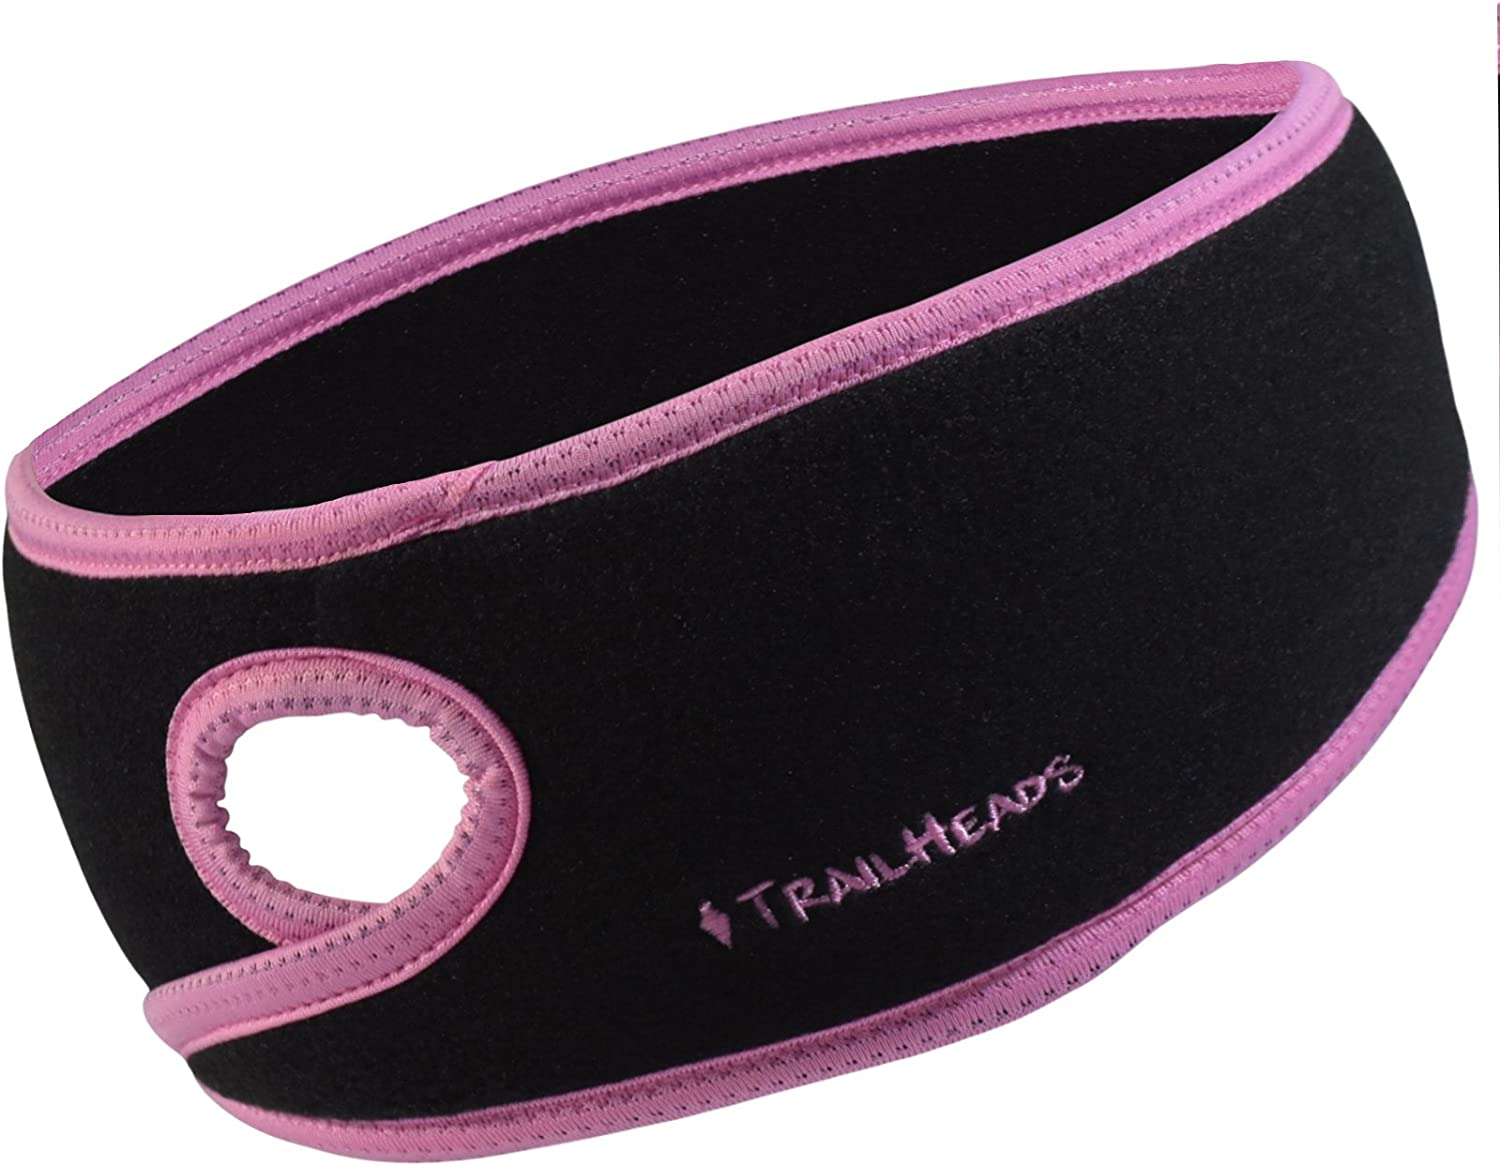 TrailHeads Womens Running Ponytail Headband Made in The USA 9 Colors